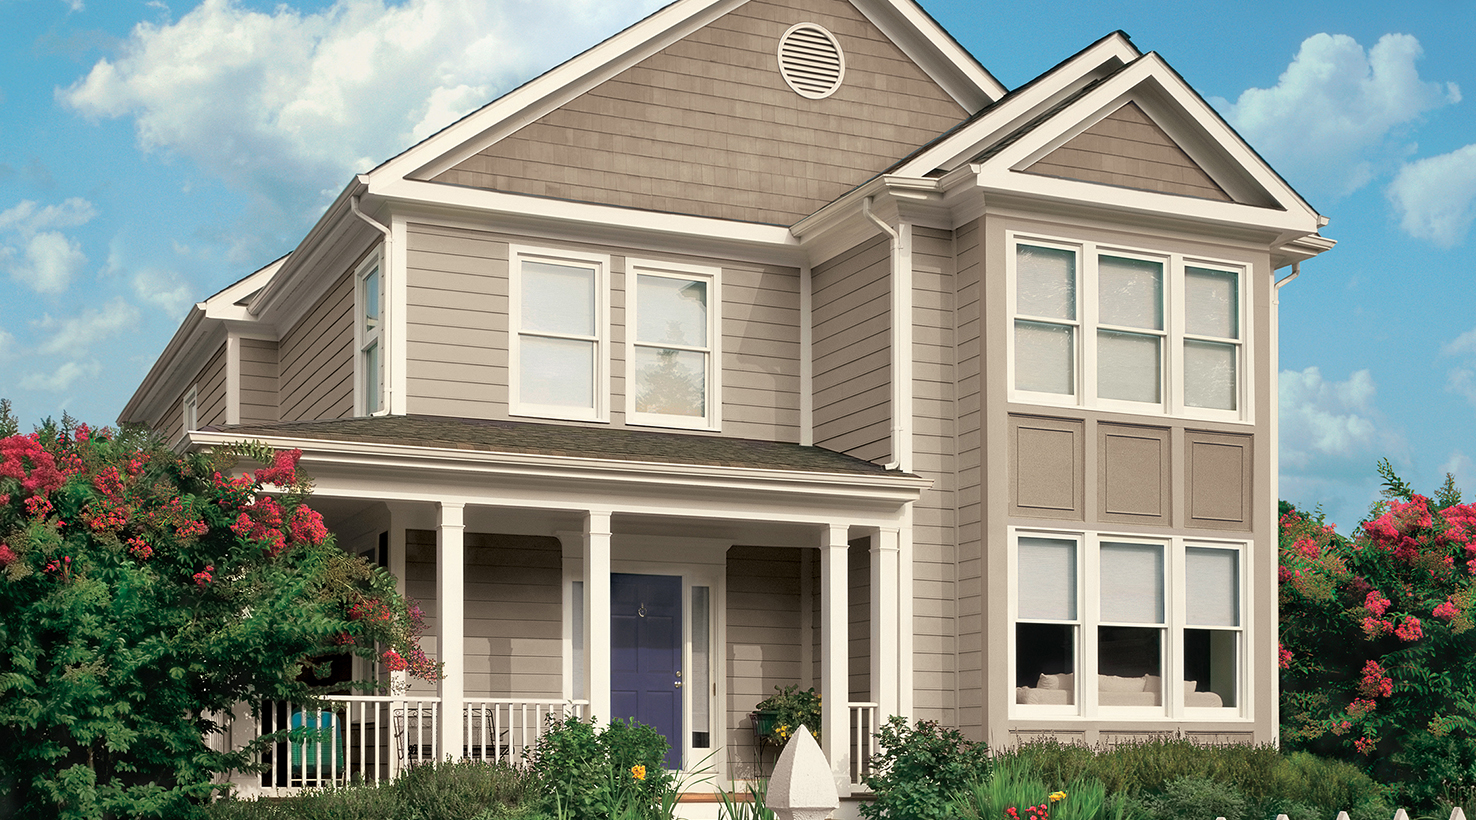 exterior color for houses gallery. 1 exterior color for houses gallery n